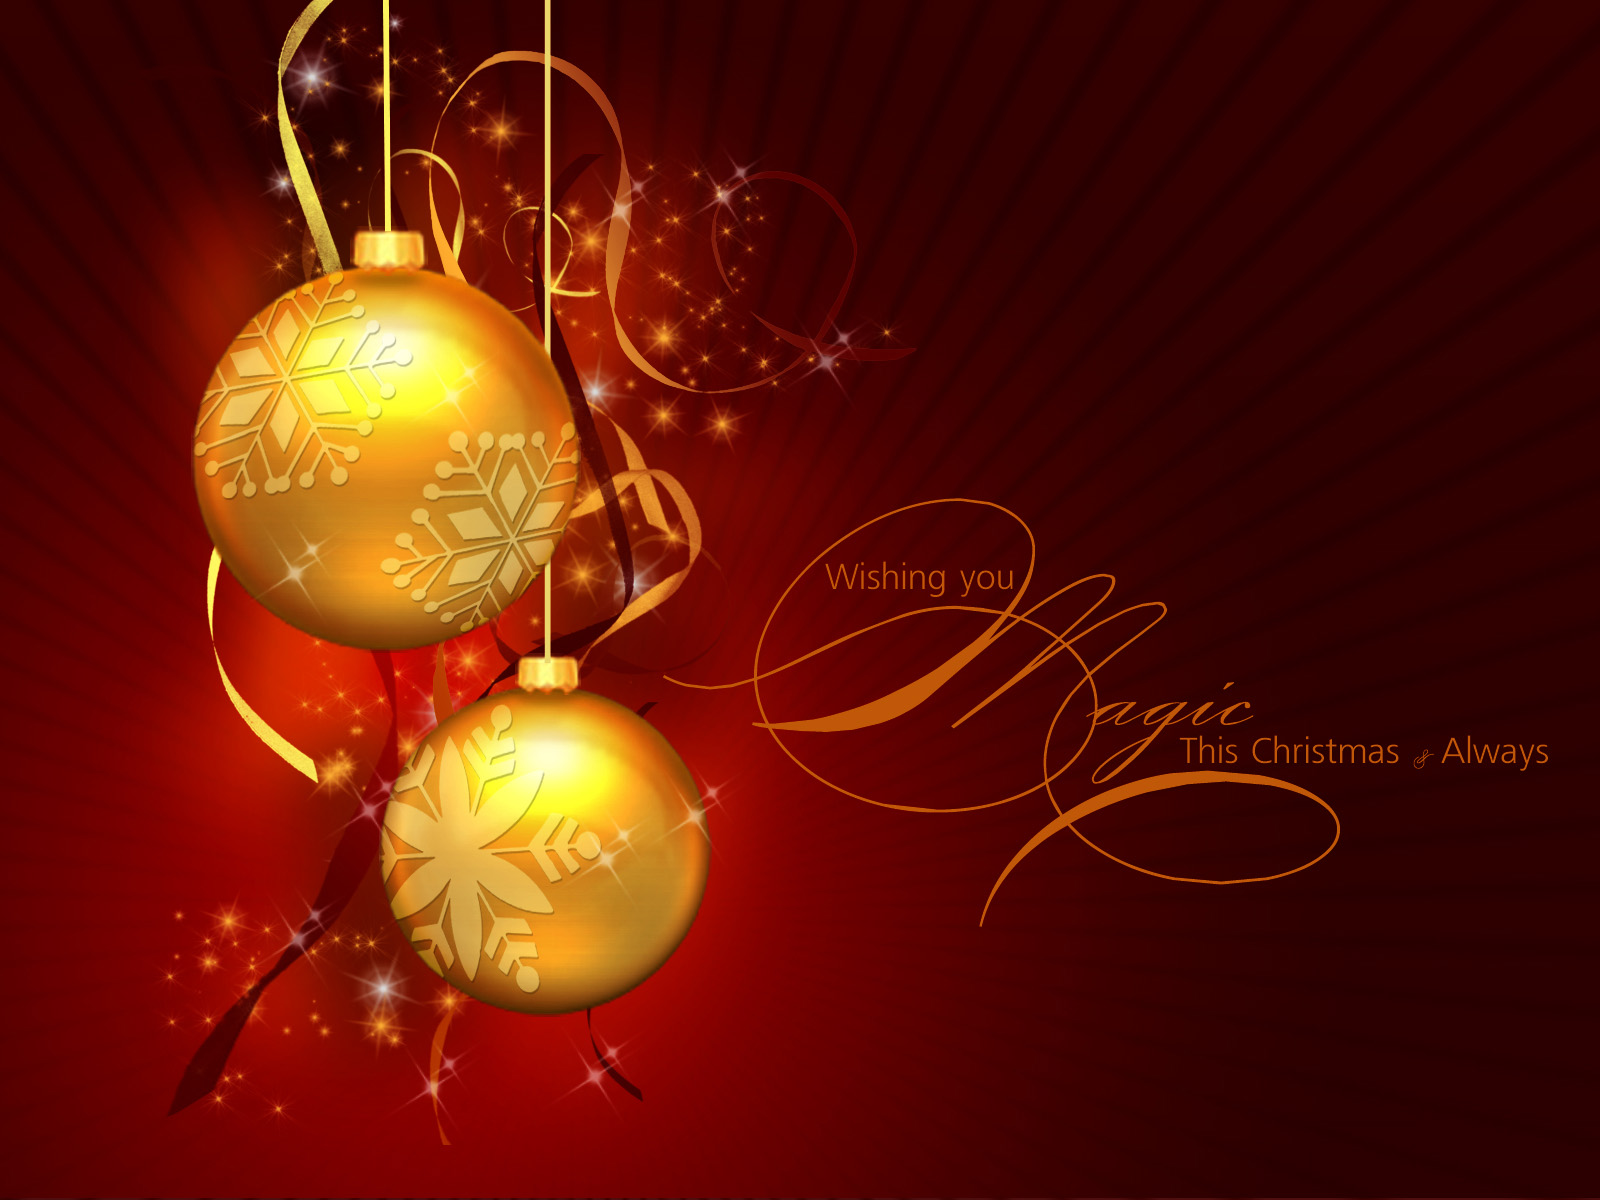 Wallpapers Free3d Christmas Wallpapers American Greetings Wallpaper 1600x1200